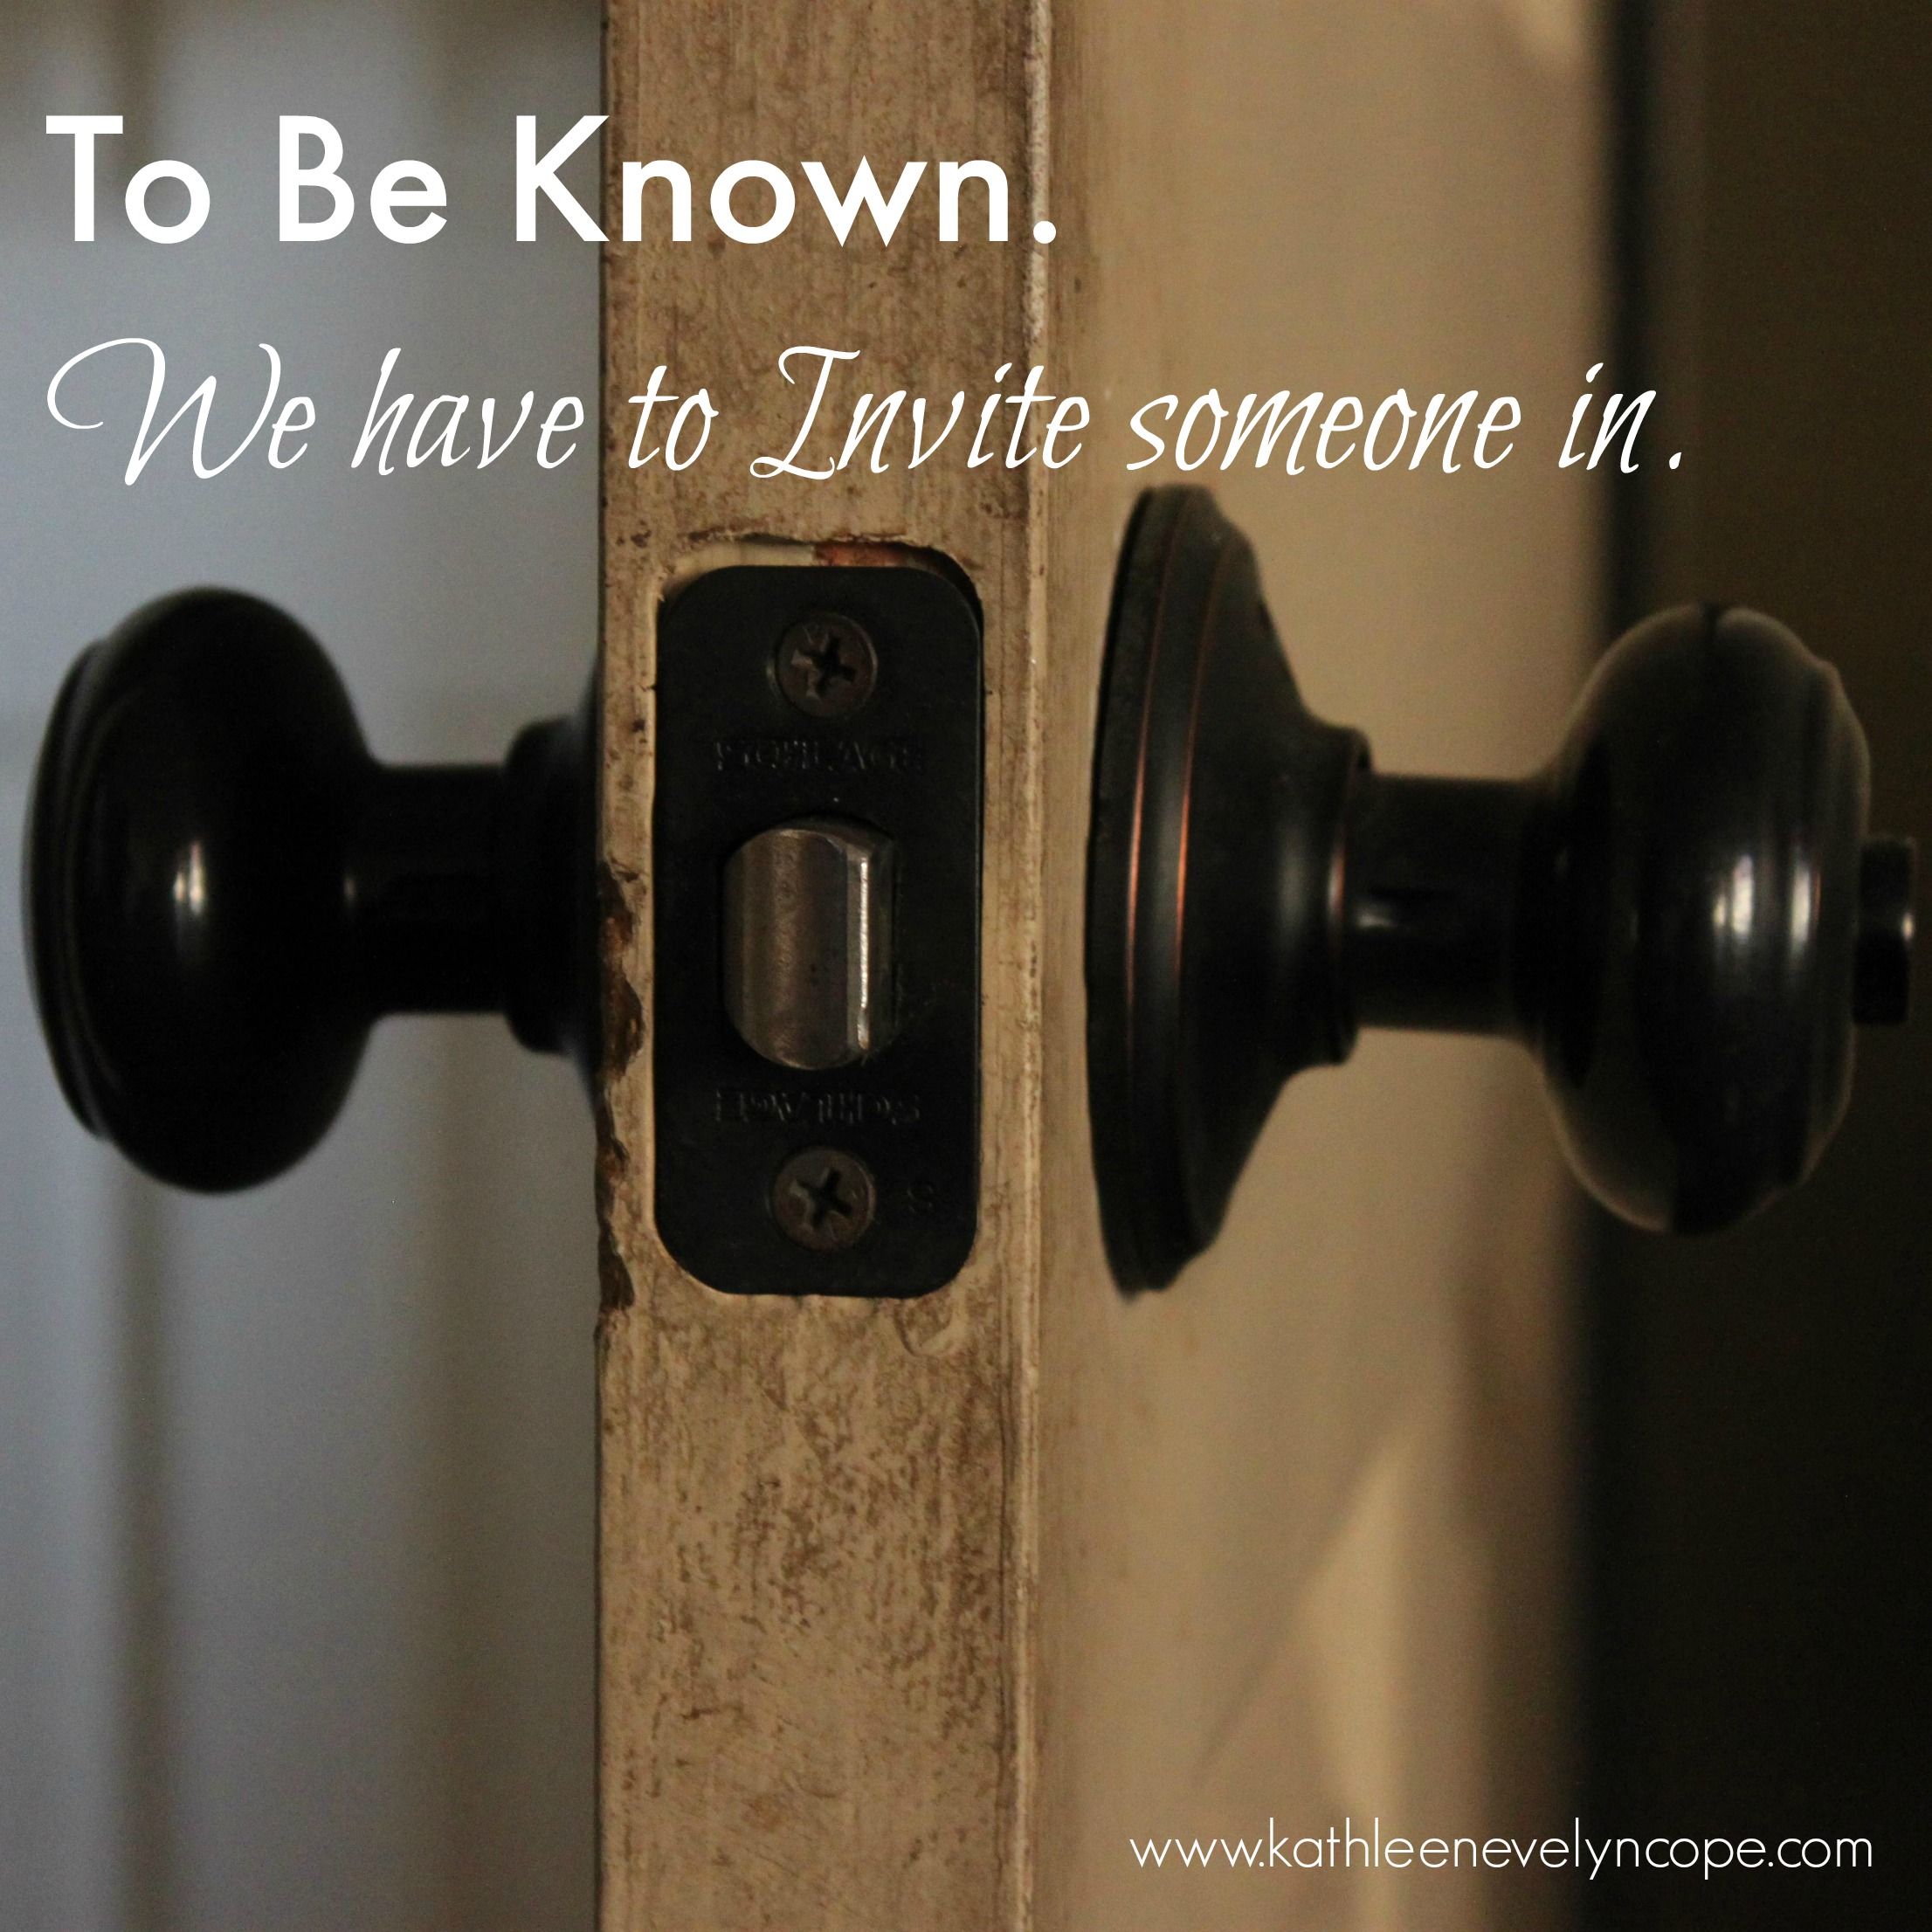 To Be Known. We have to Invite someone in.